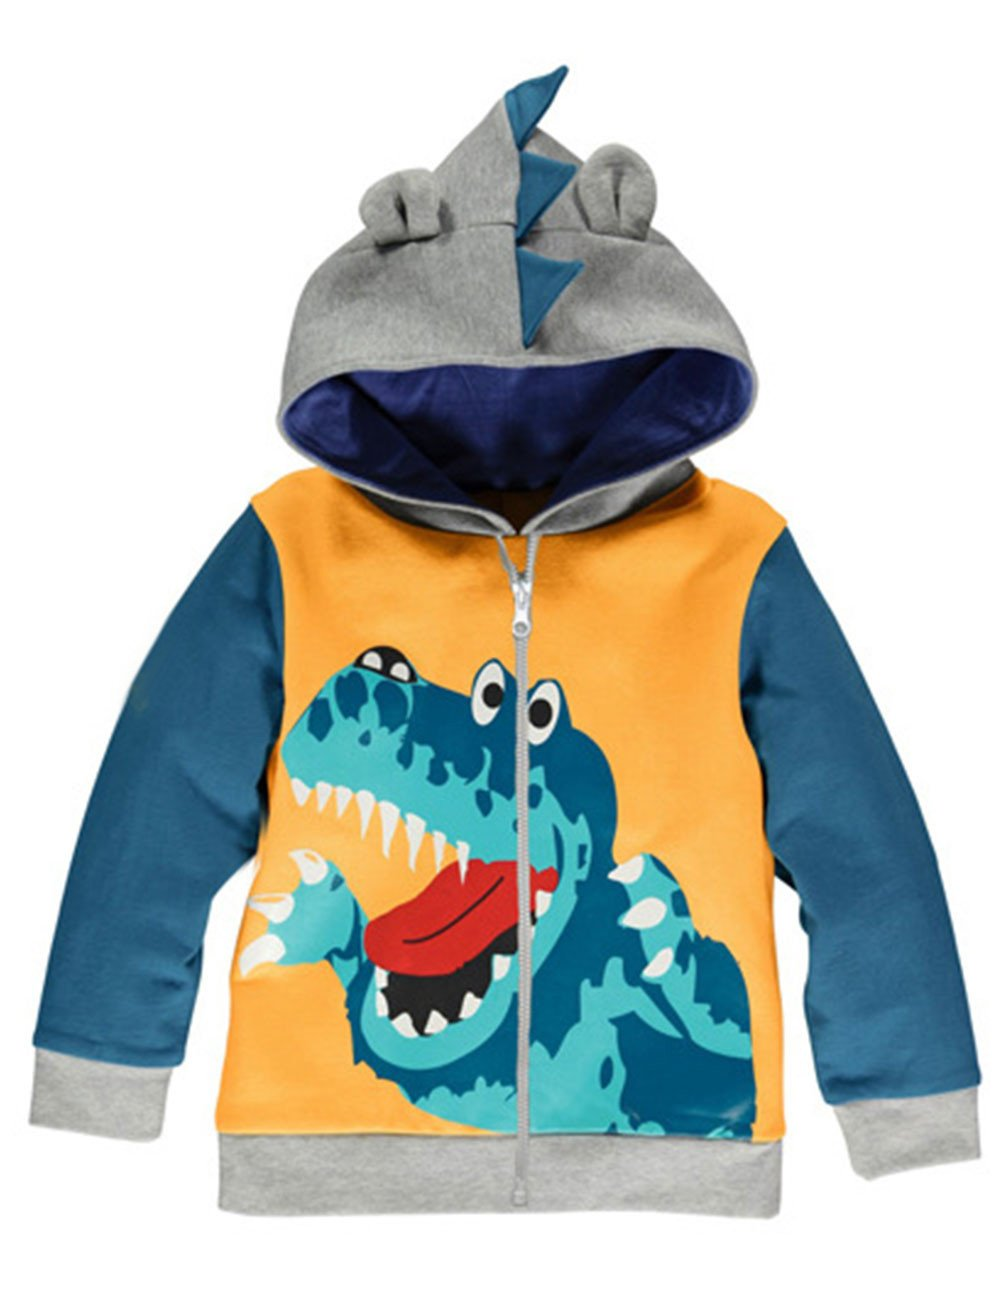 LitBud Toddler Boys Hoodies Jacket Cartoon Dinosaur Zipper Packaway Autumn Coat for Kids 1-5 Years